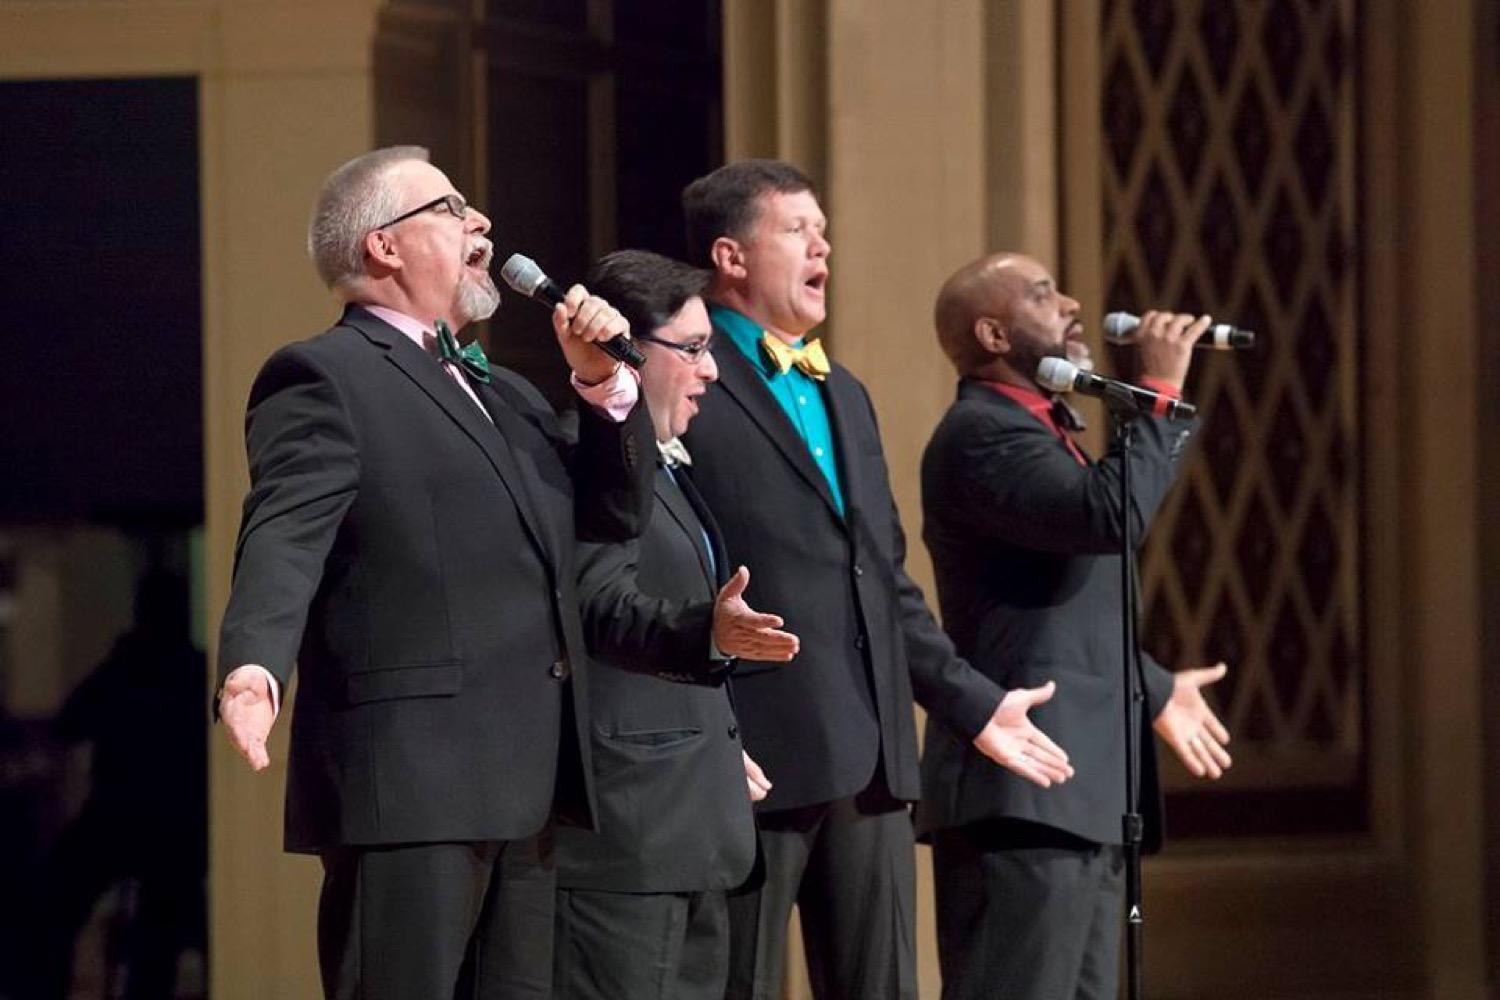 Join ArtsWave Wednesday, April 19 at the Aronoff Center for the CincySings Finals, a competition which pits singing teams from Cincinnati's largest companies against each other. / Image courtesy of ArtsWave